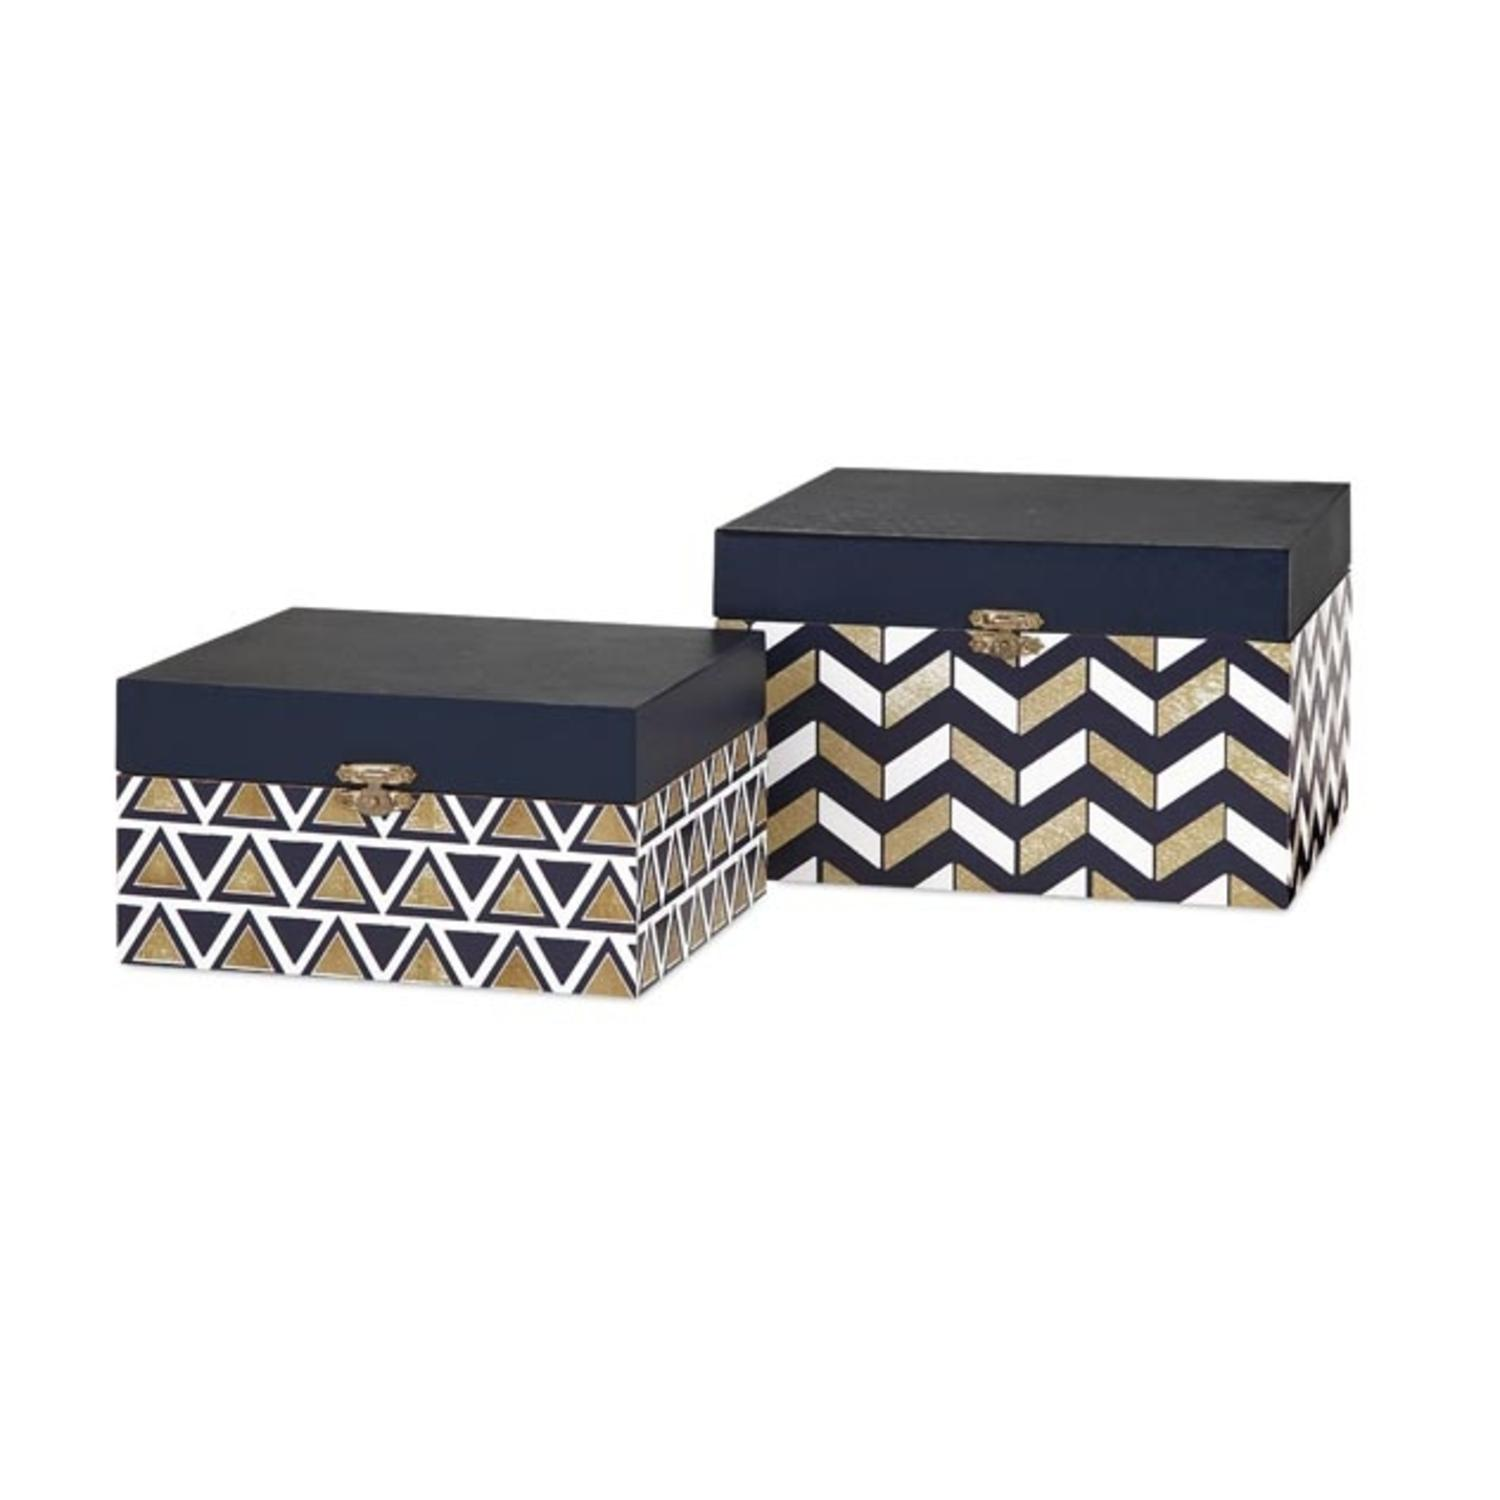 Set of 2 Navy Blue Metallic Gold and Classic White Chevron Patterned Decorative Wooden Storage Boxes 8""